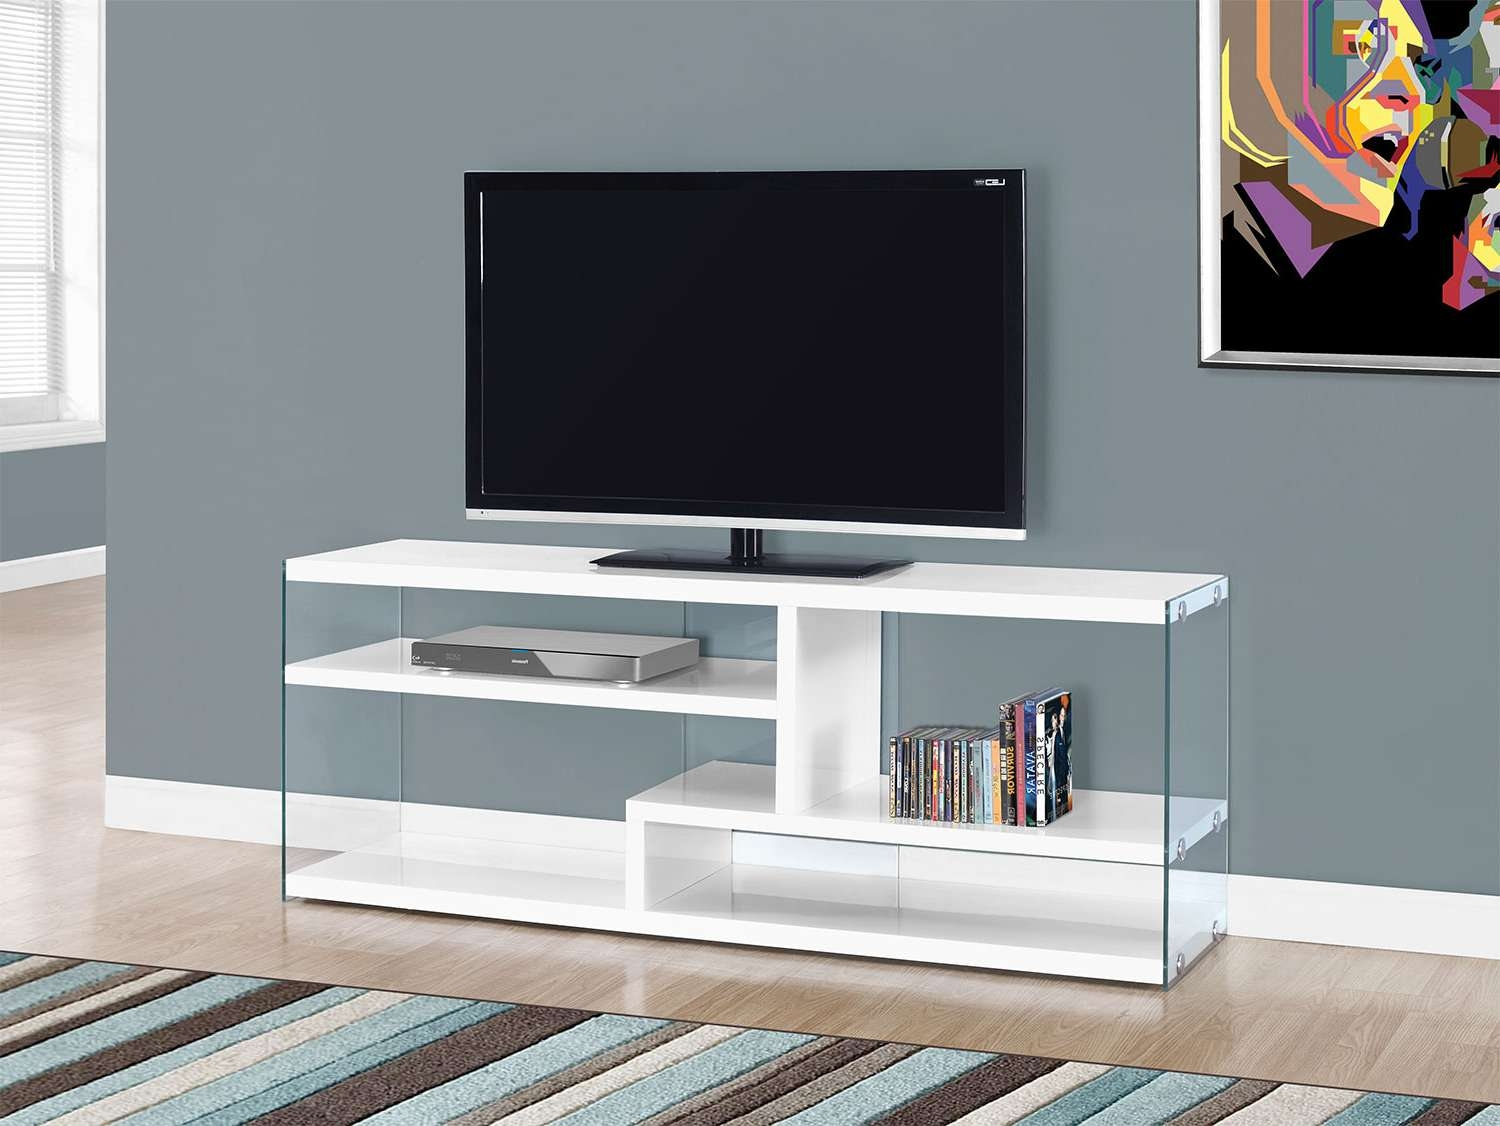 Zara Tv Stand – White | Leon's Pertaining To Glossy White Tv Stands (View 15 of 15)